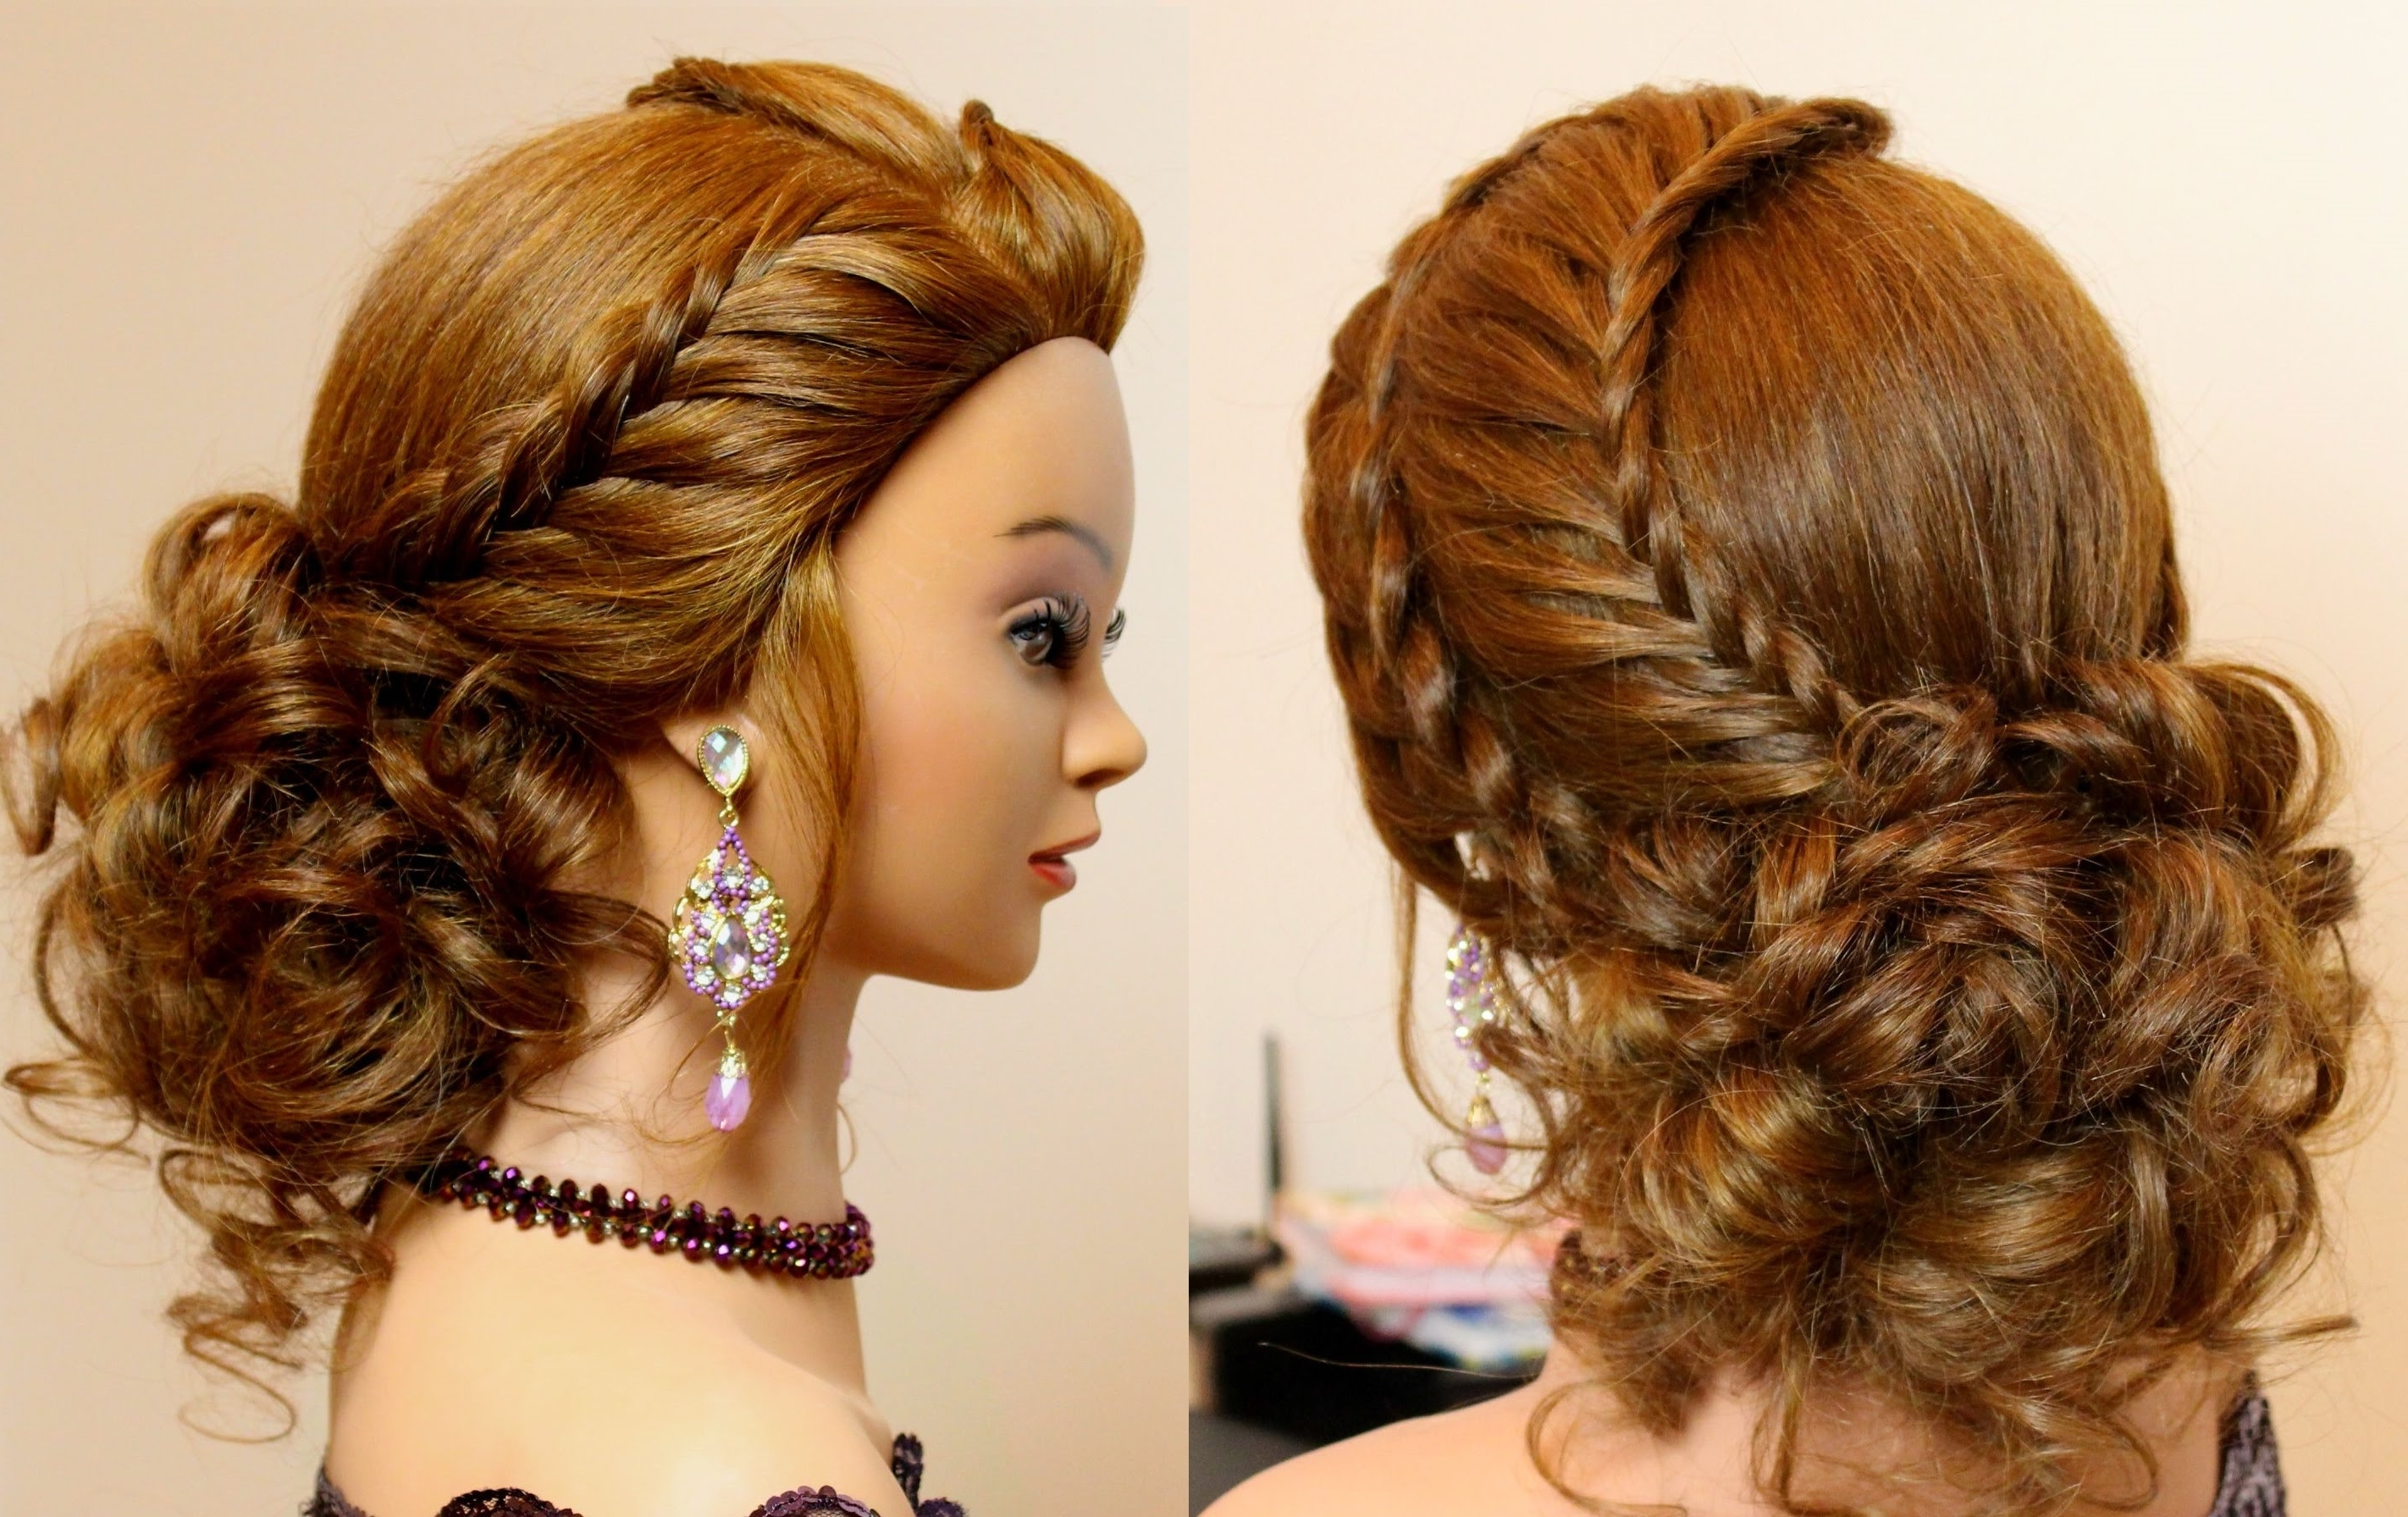 Fancy Hairstyles For Long Hair Updo Wedding Updos Hairstyle Formal Throughout Wedding Hairstyles For Long Hair Updo (View 12 of 15)